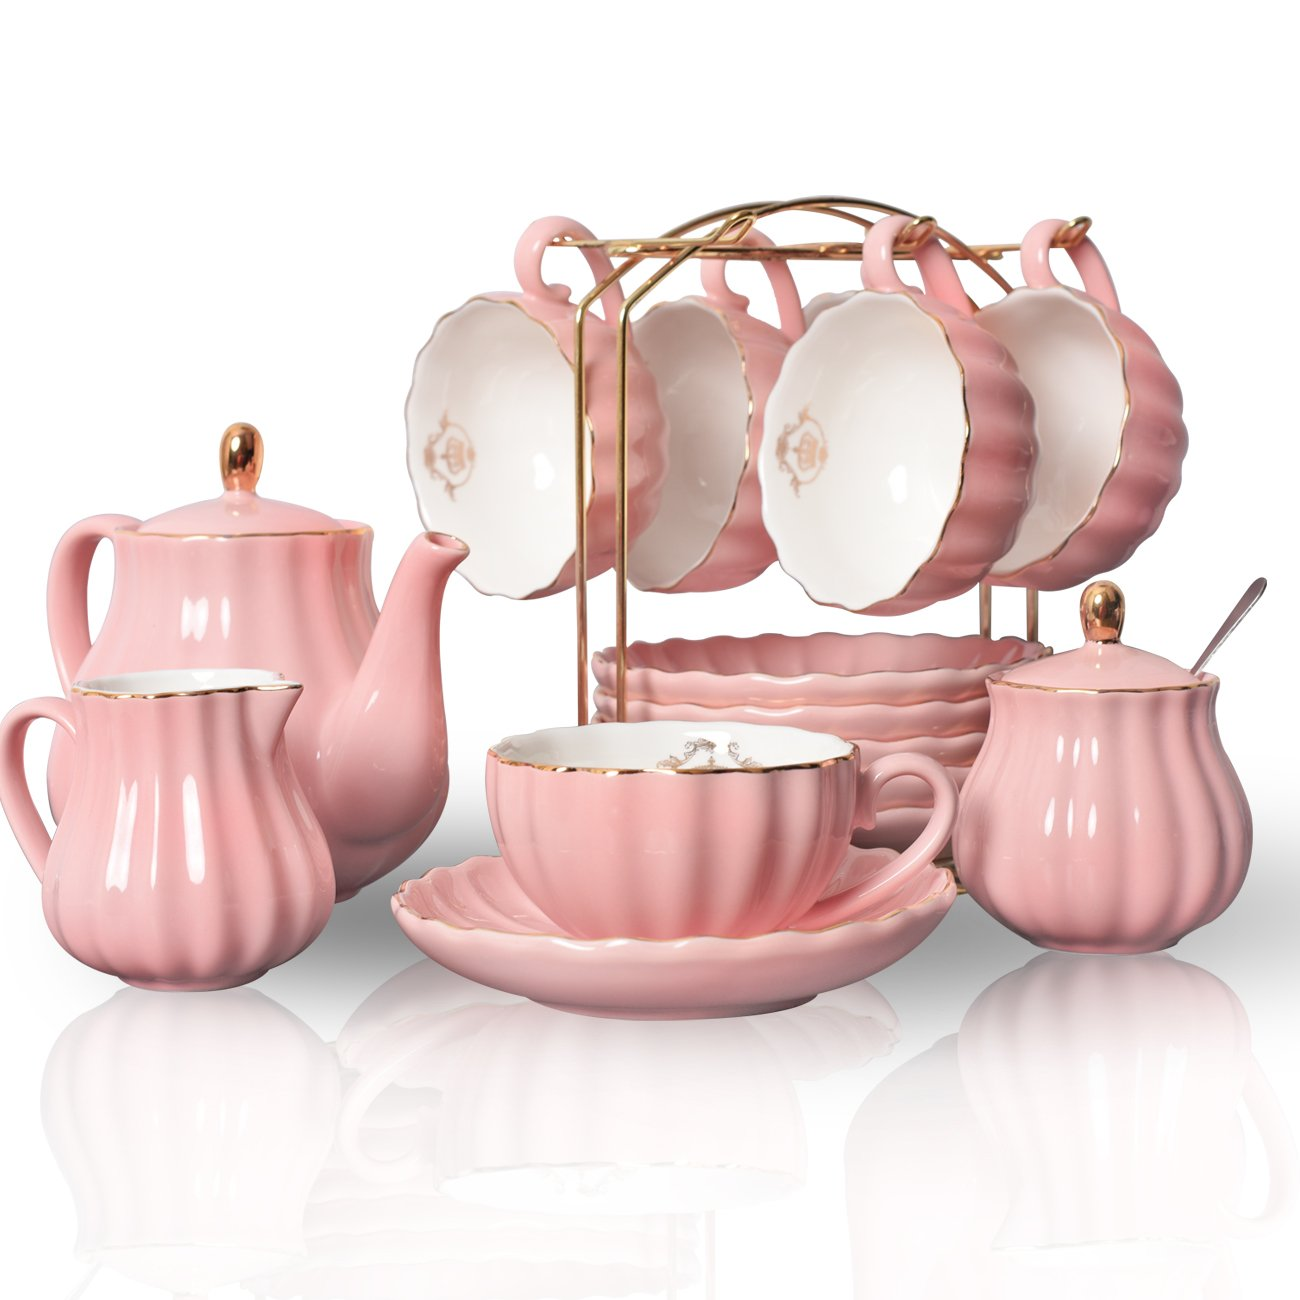 Porcelain Tea Sets British Royal Series, 8 OZ Cups& Saucer Service for 6, with Teapot Sugar Bowl Cream Pitcher Teaspoons and tea strainer for Tea/Coffee, Pukka Home (Young Pink)